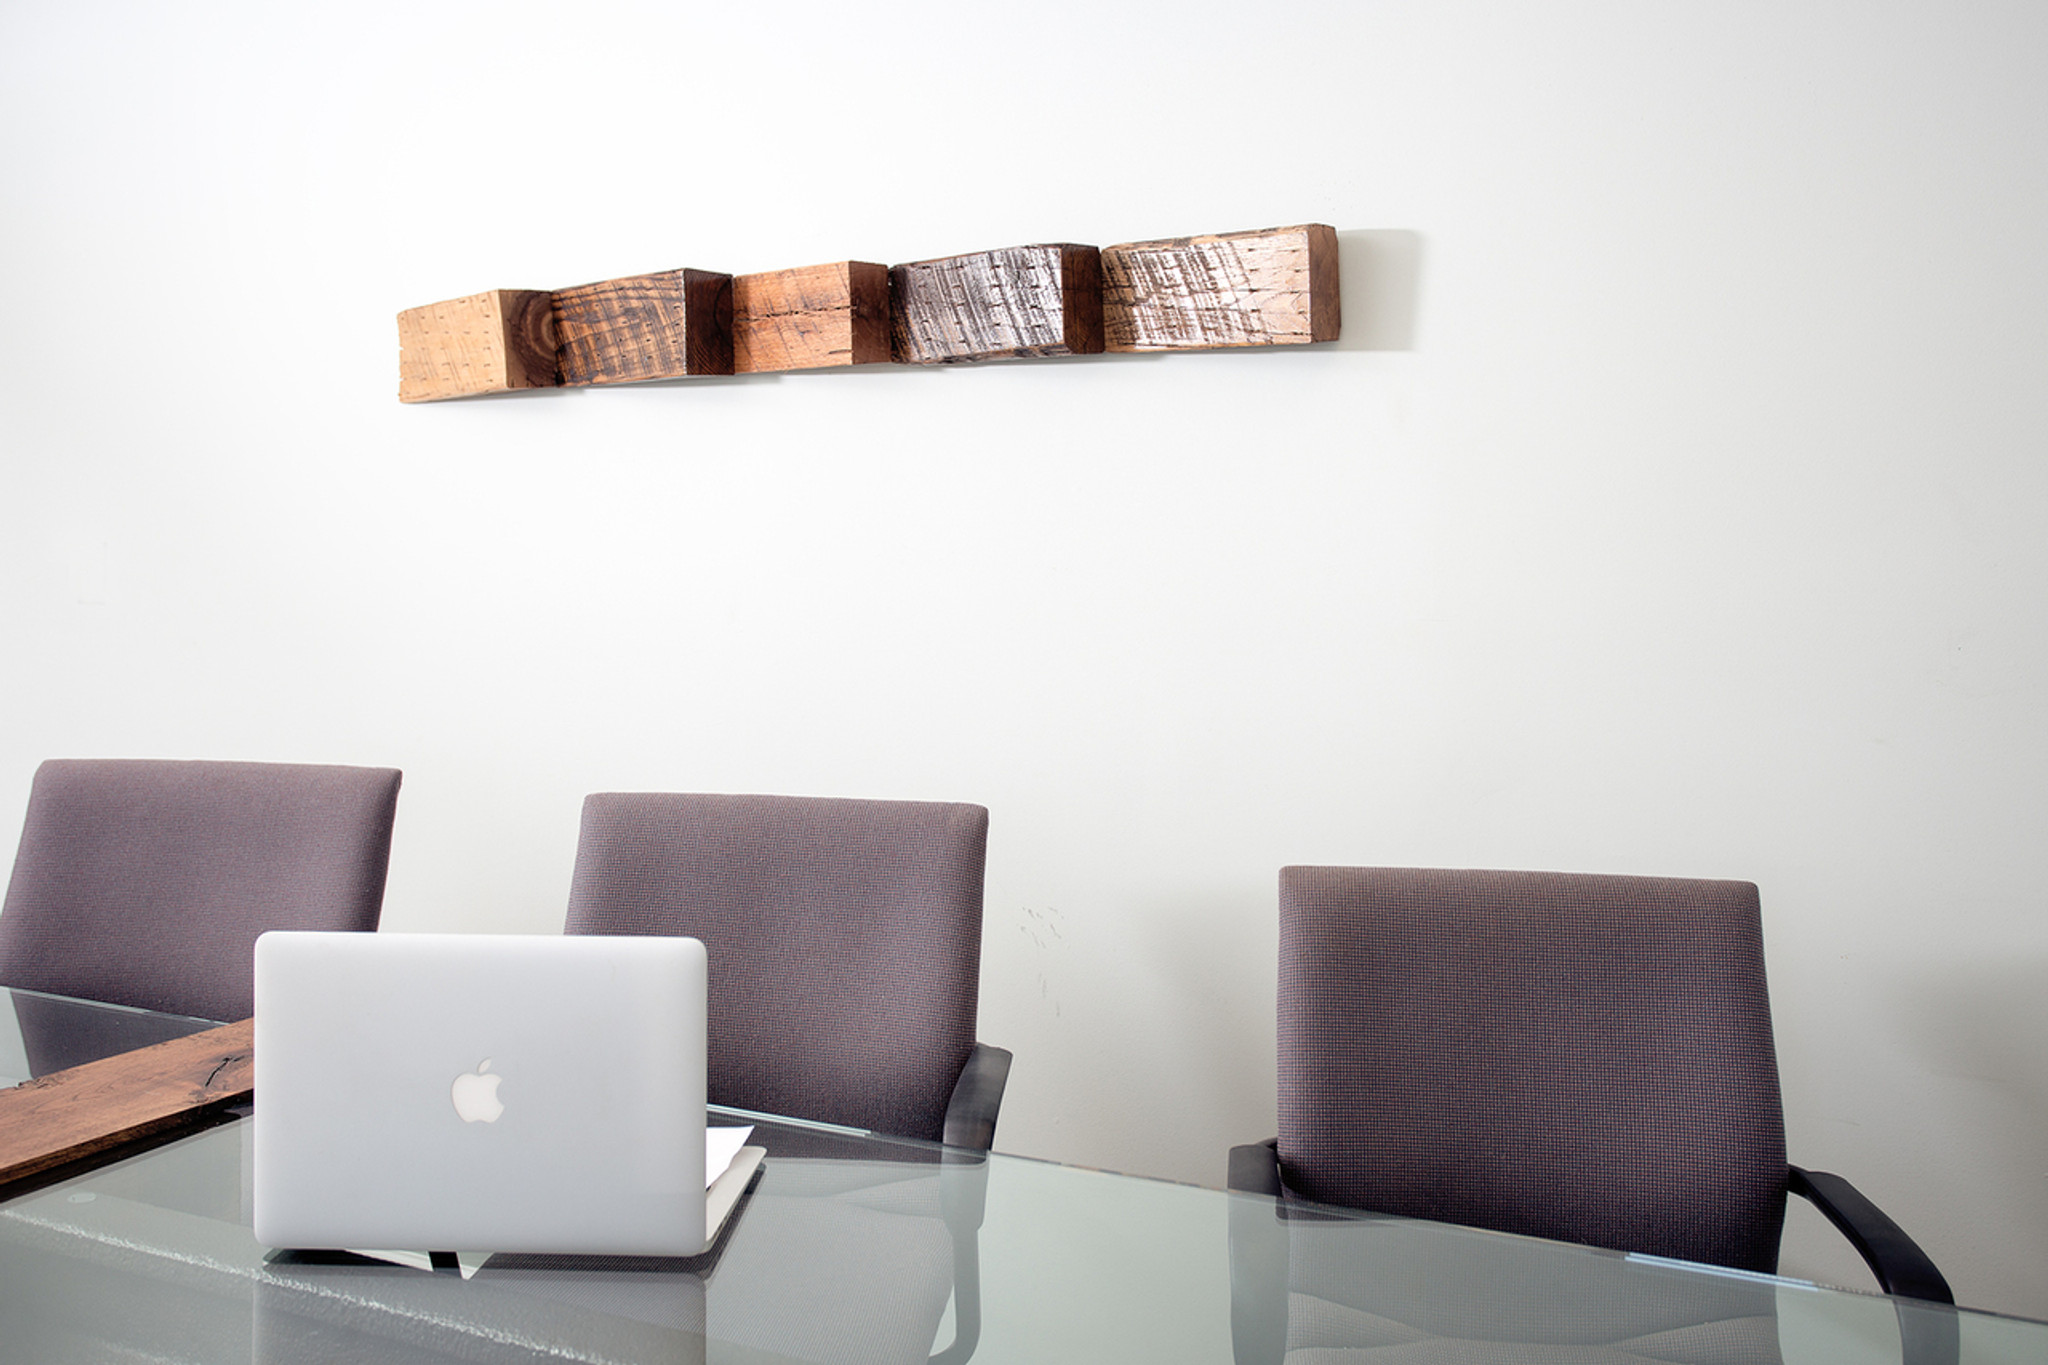 conference room modern art sculptural accent for wall natural oak hardwood